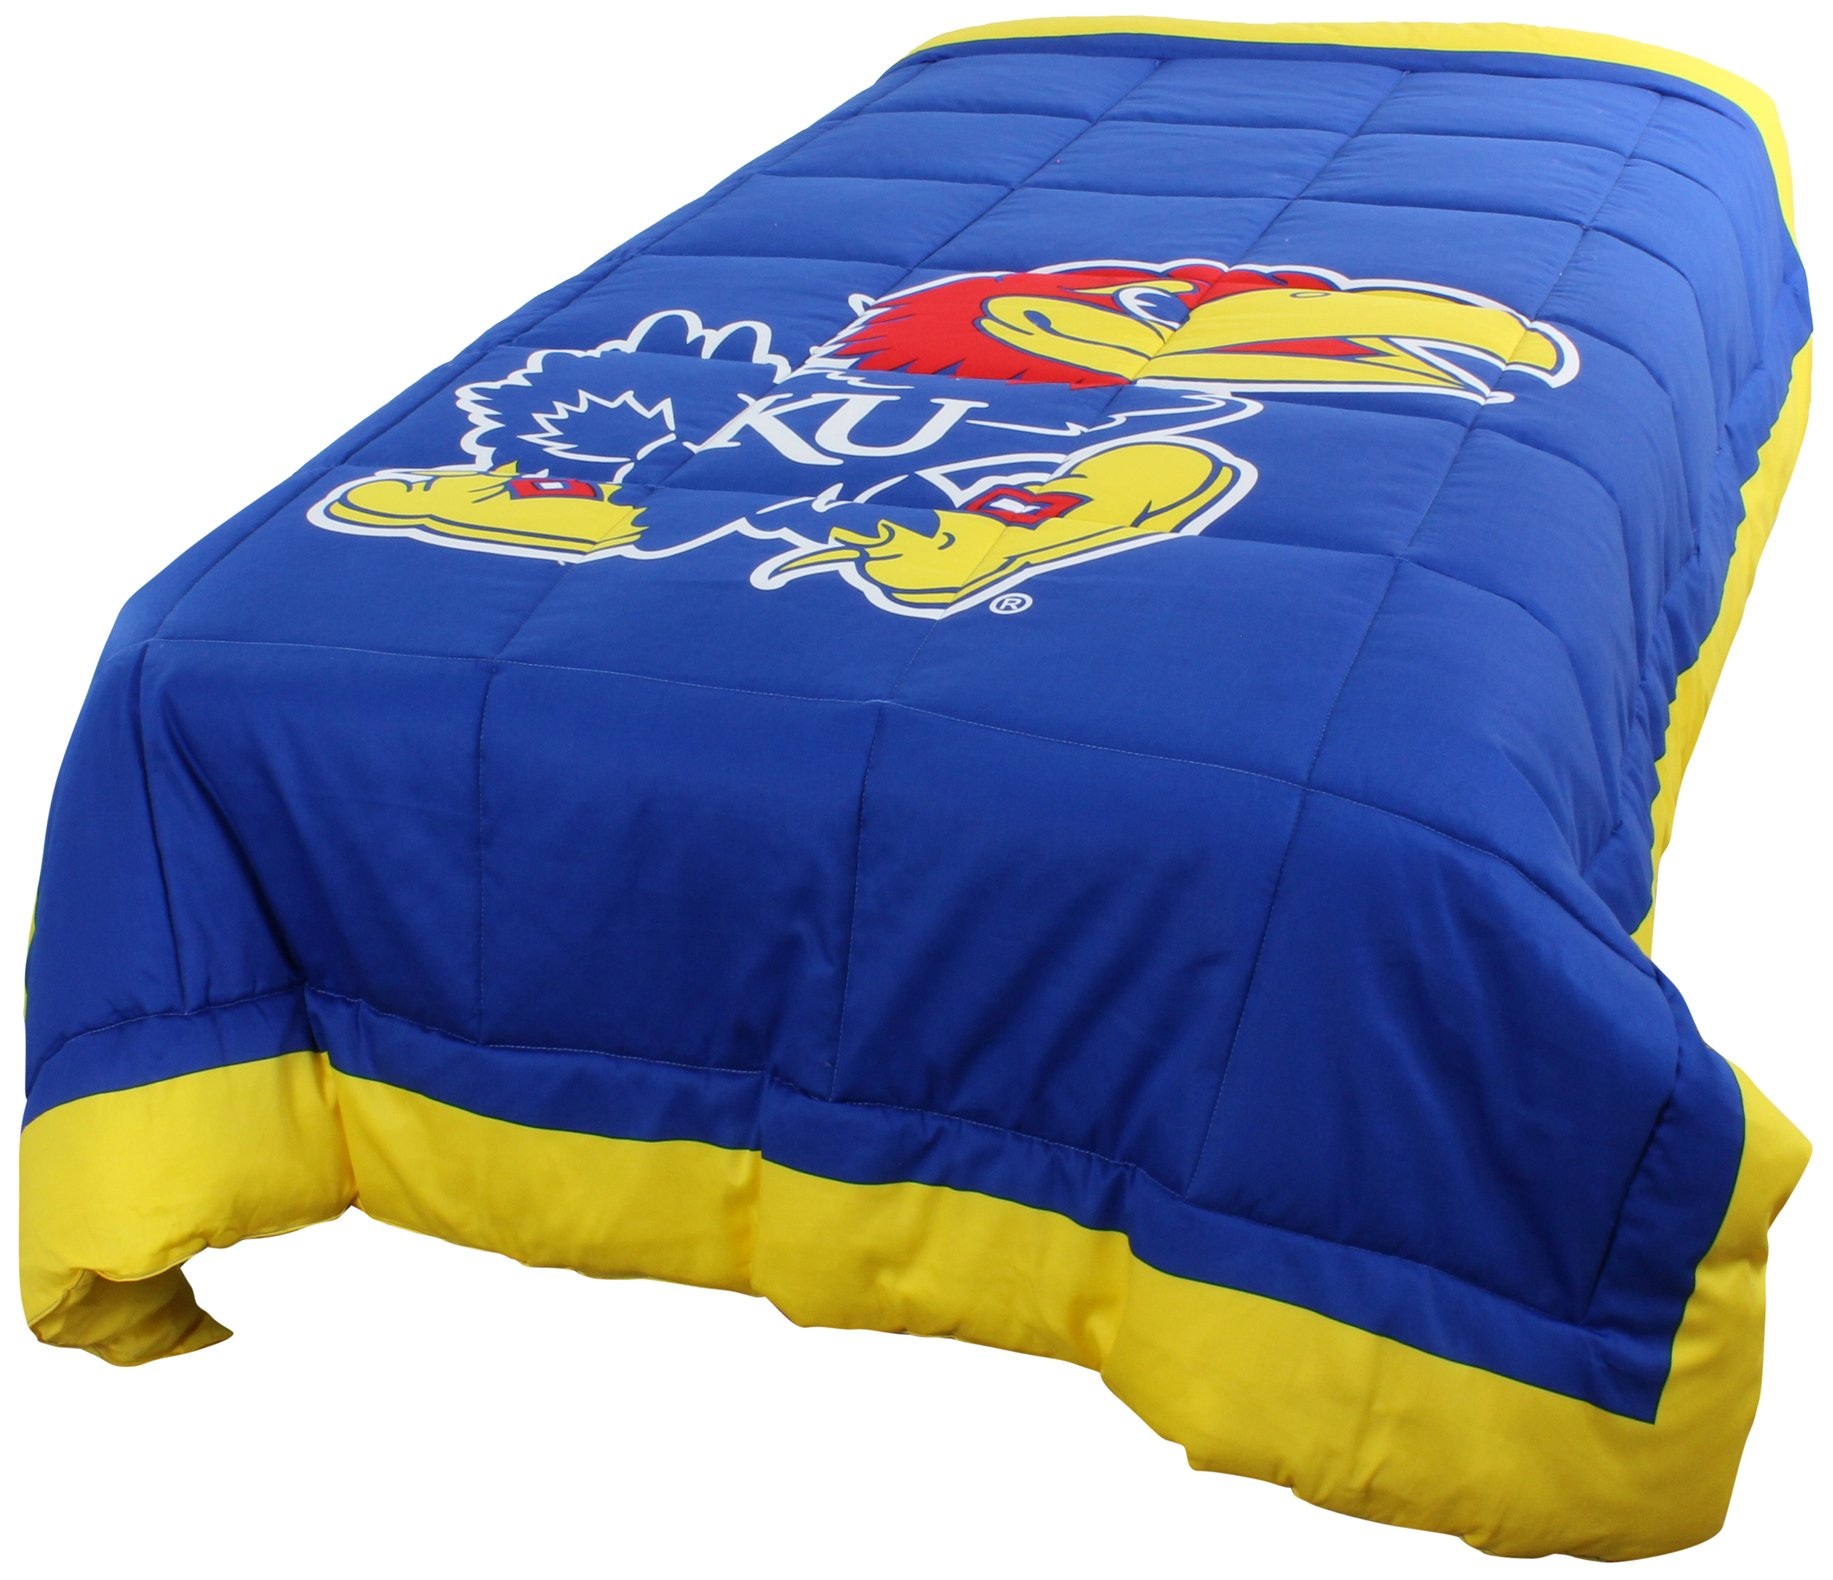 College Covers Kansas Jayhawks 2 Sided Reversible Comforter, Twin